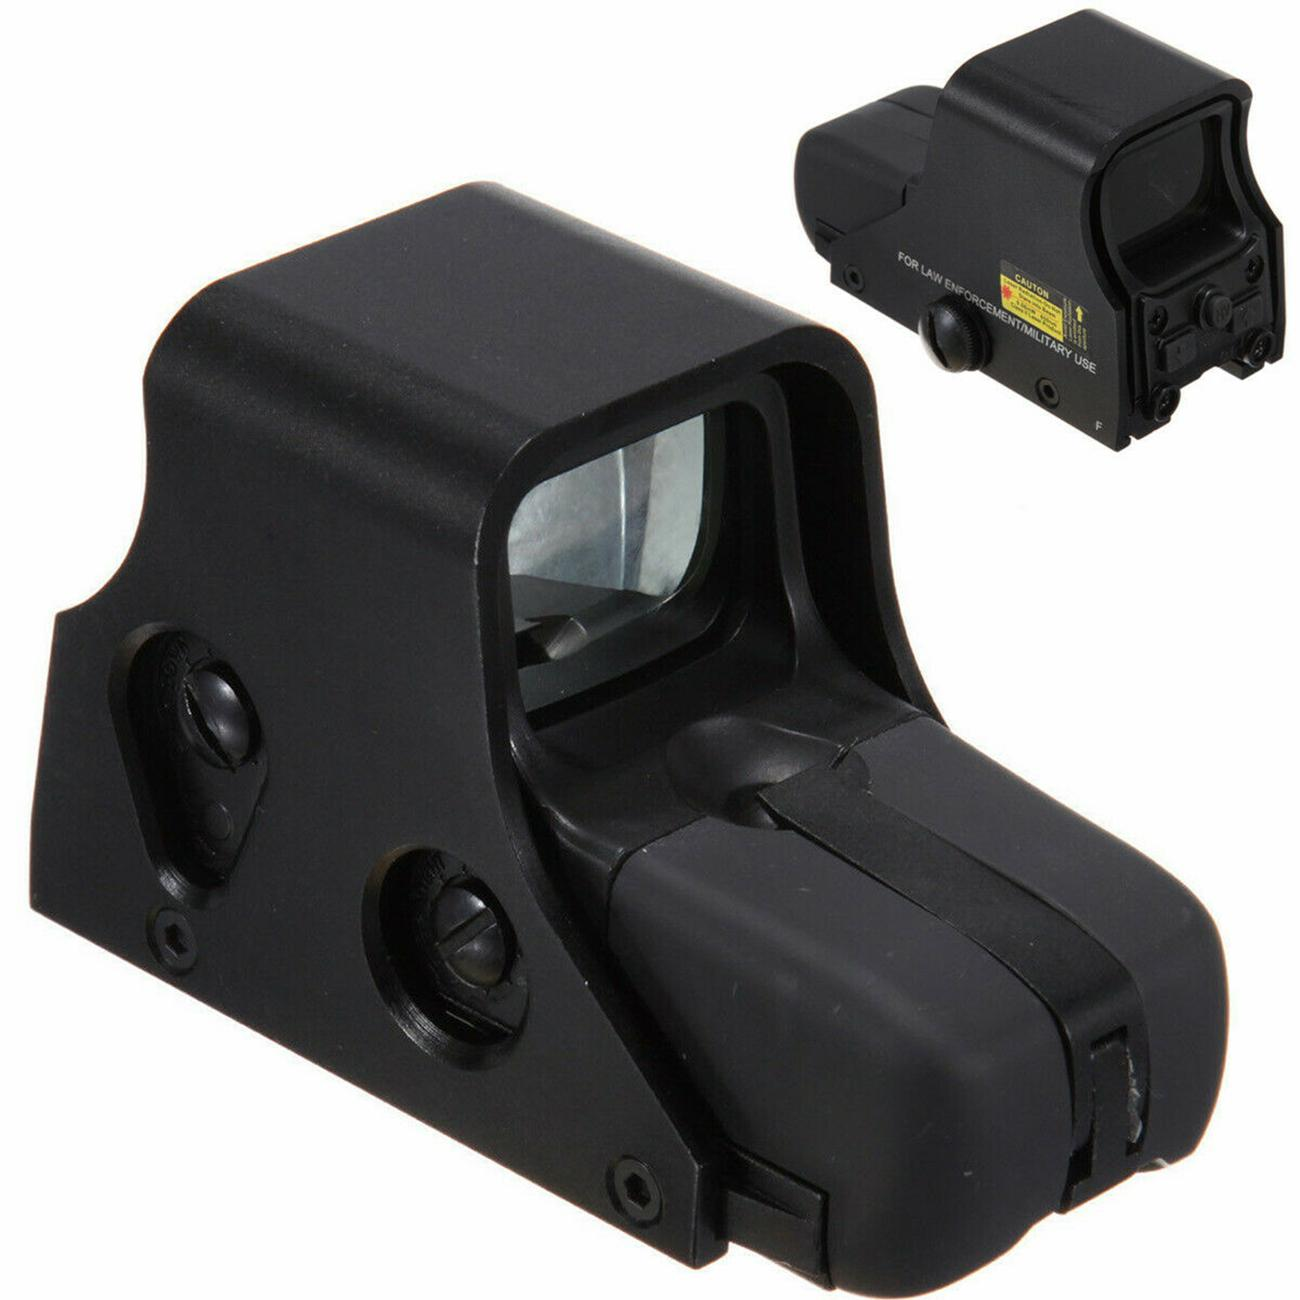 1/3pcs Red/Green Dot Sight Scope Collimator Reflex Sight Scope Fit 551 Airsoft Hunting Holographic Sight For Outdoor Hunting